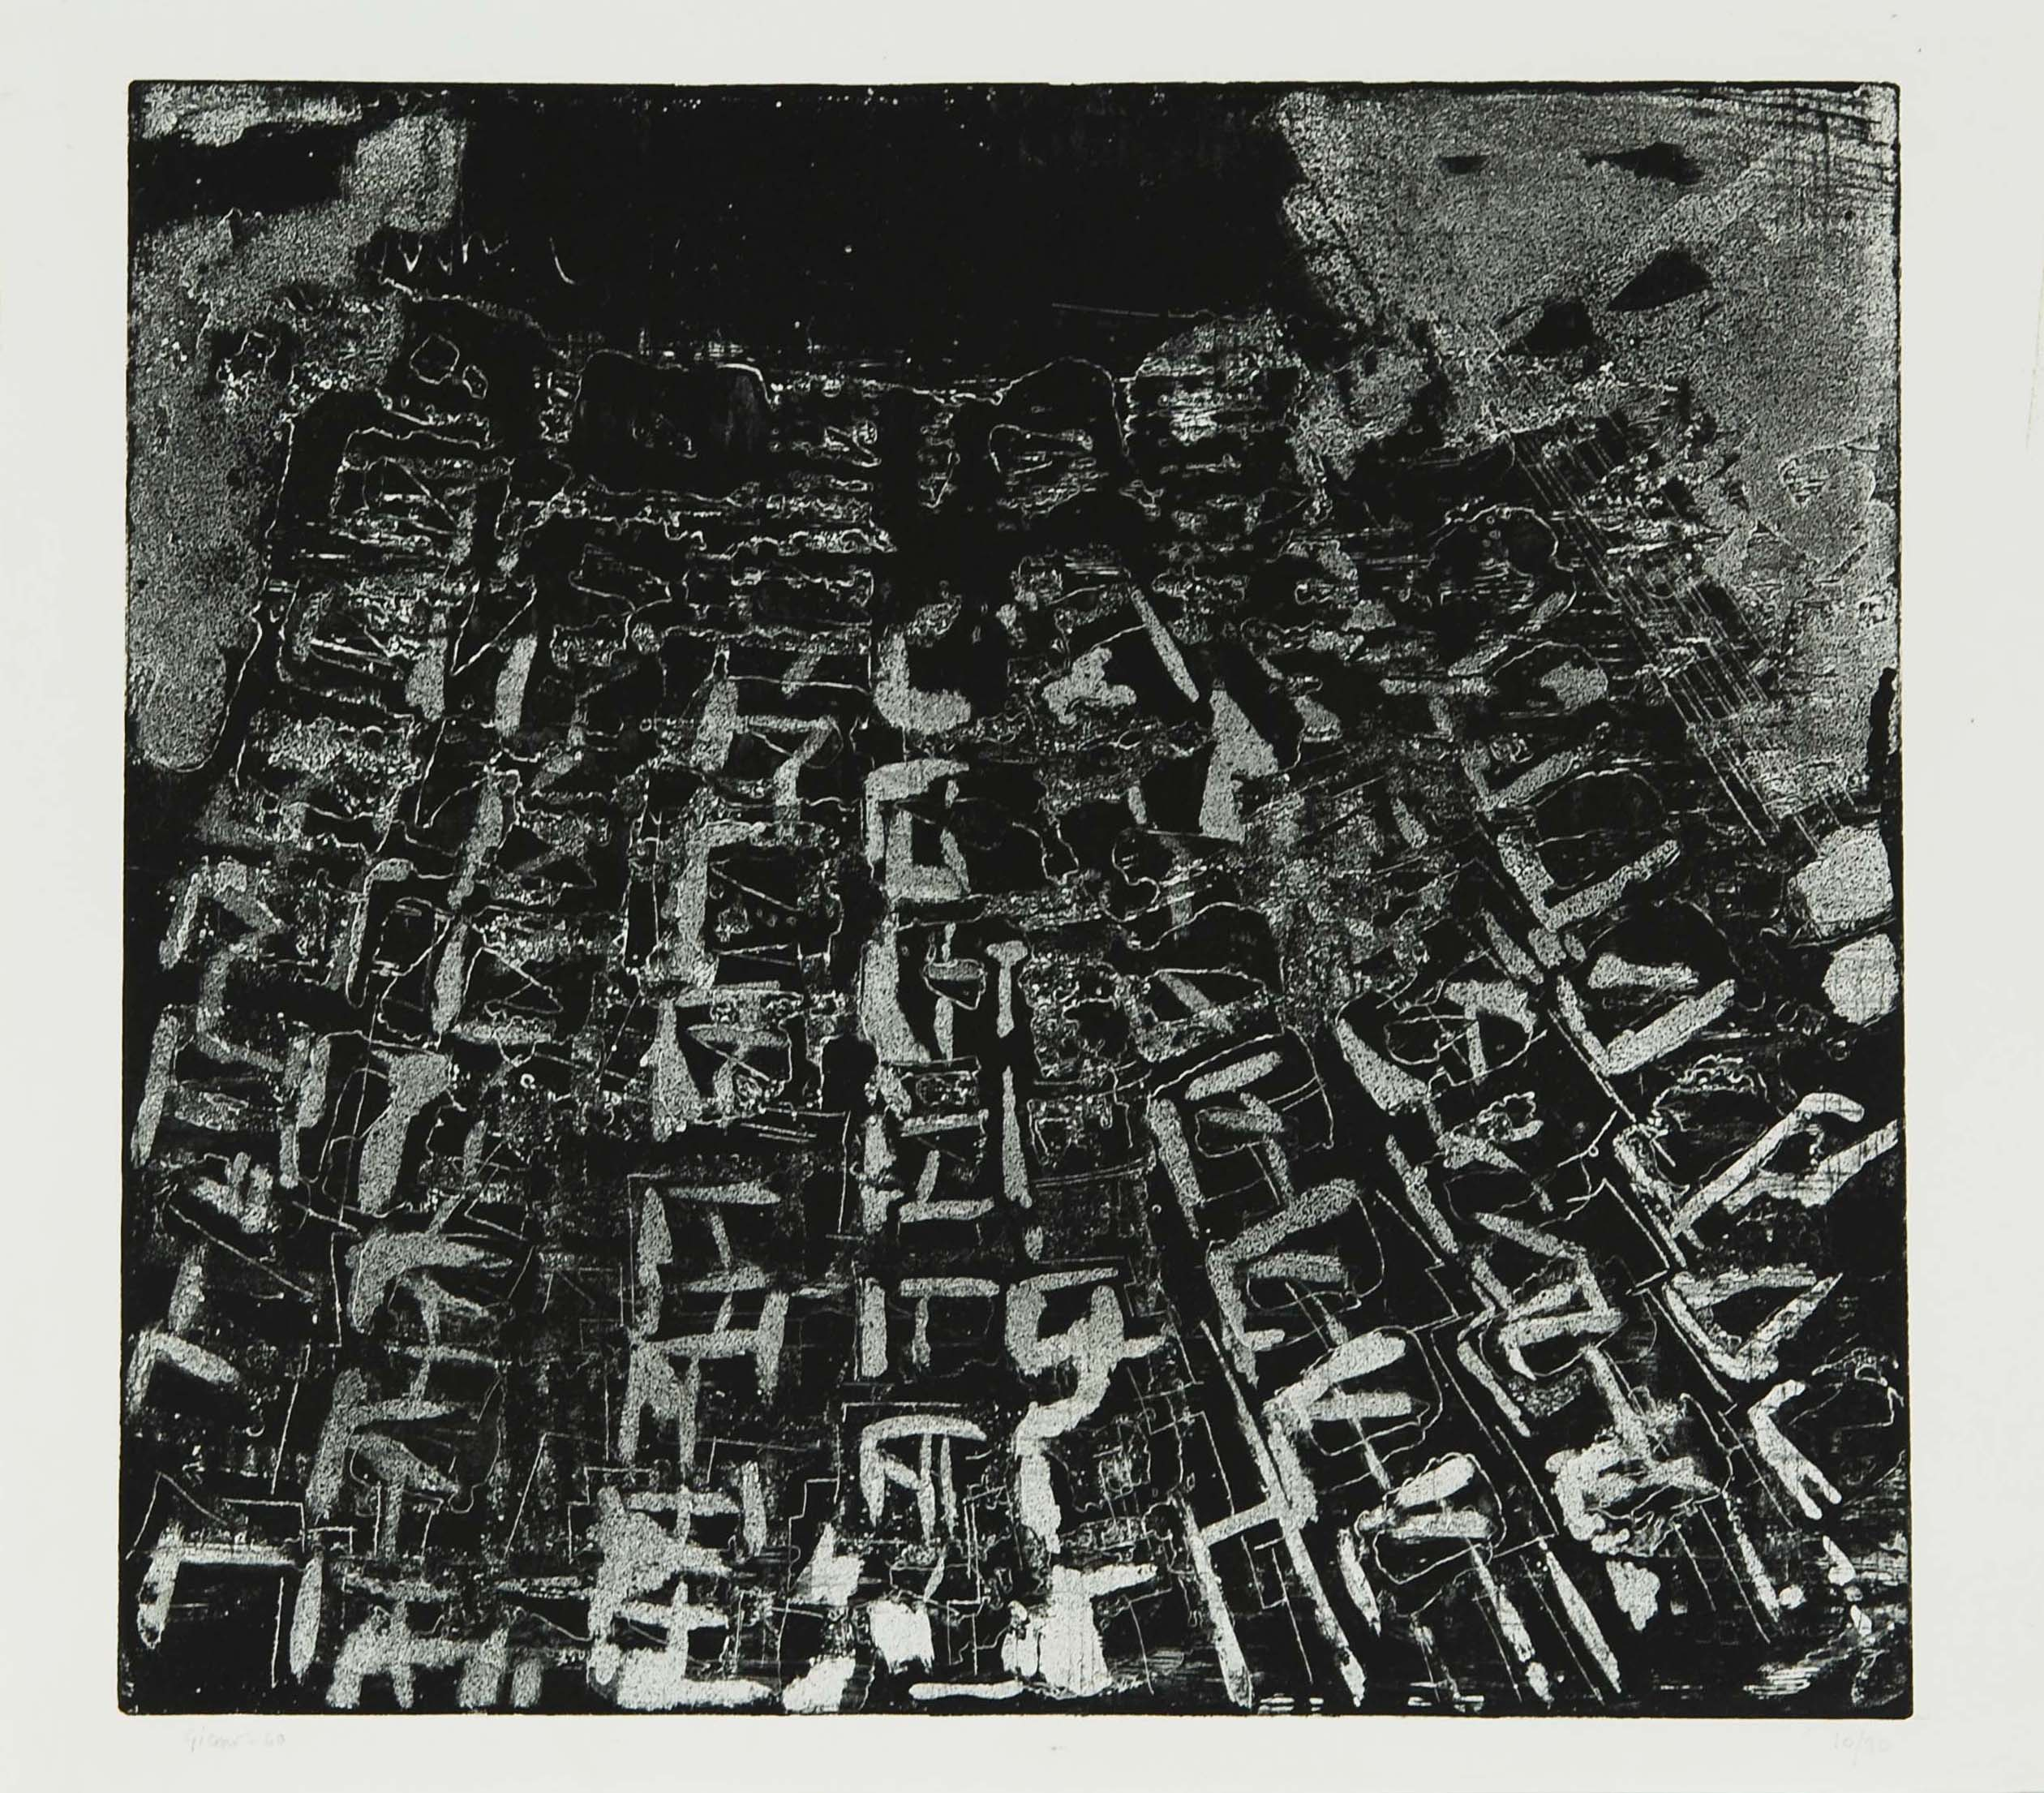 Gösta Gierow, Inwards, 1960